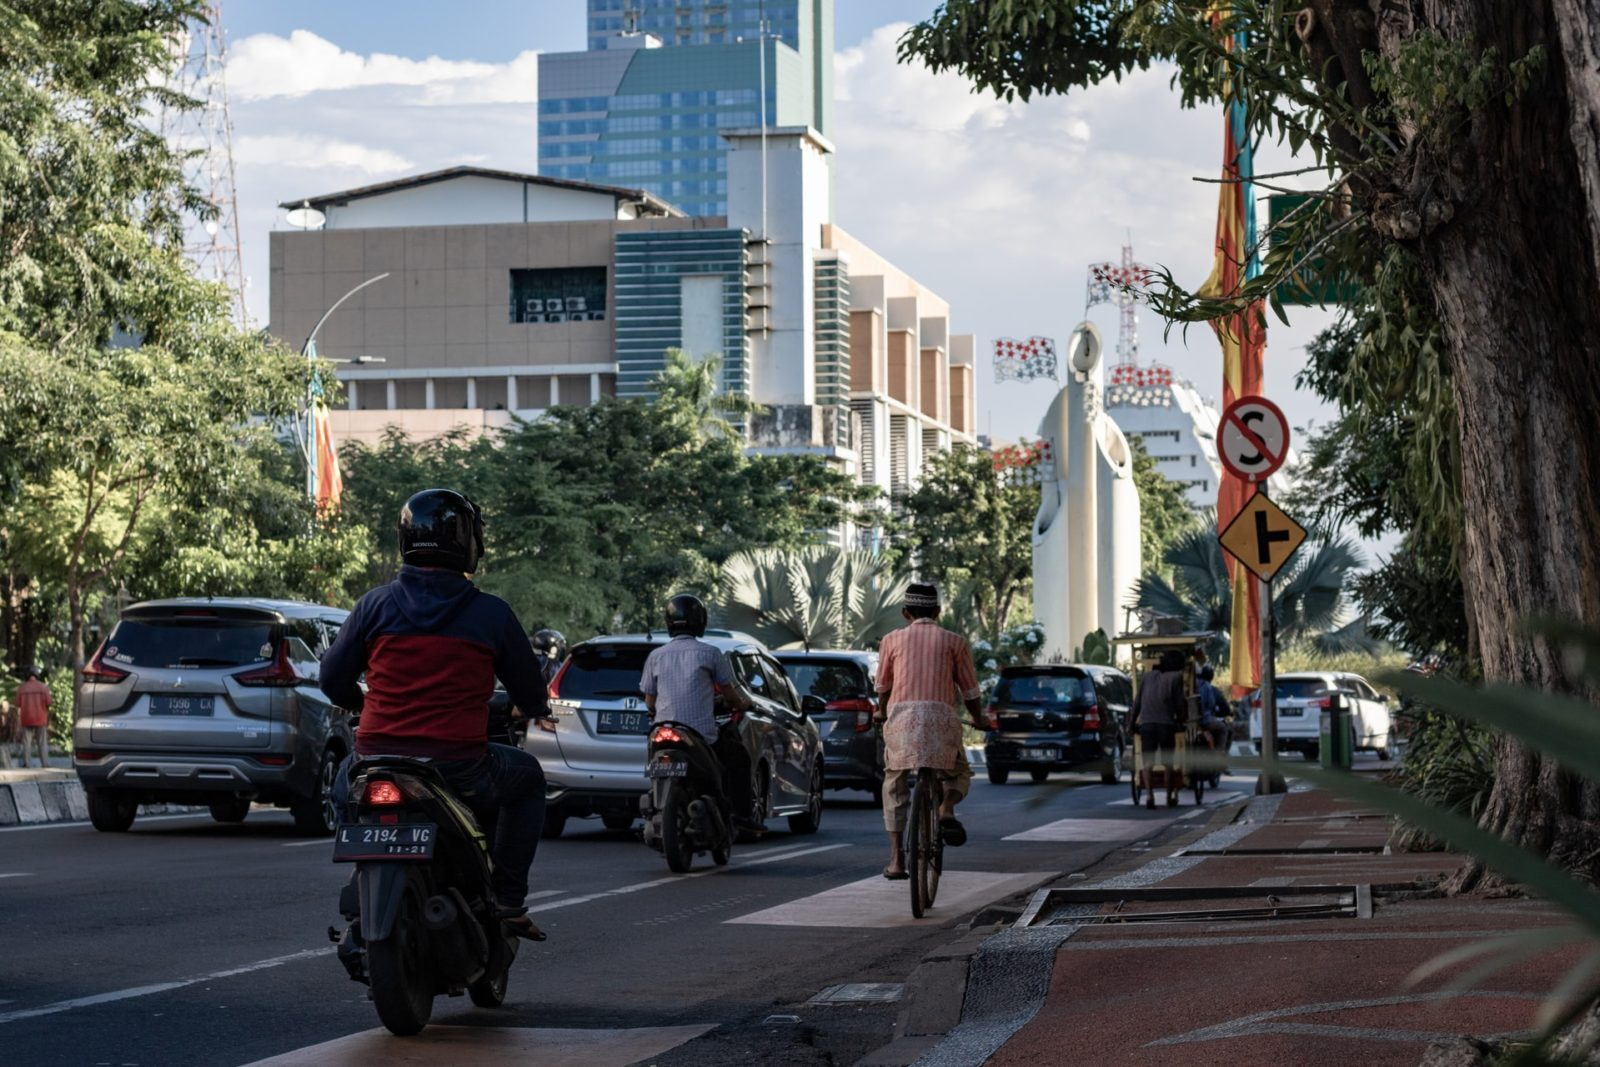 Street scene in Indonesia. A road with cars and scooters and cyclist